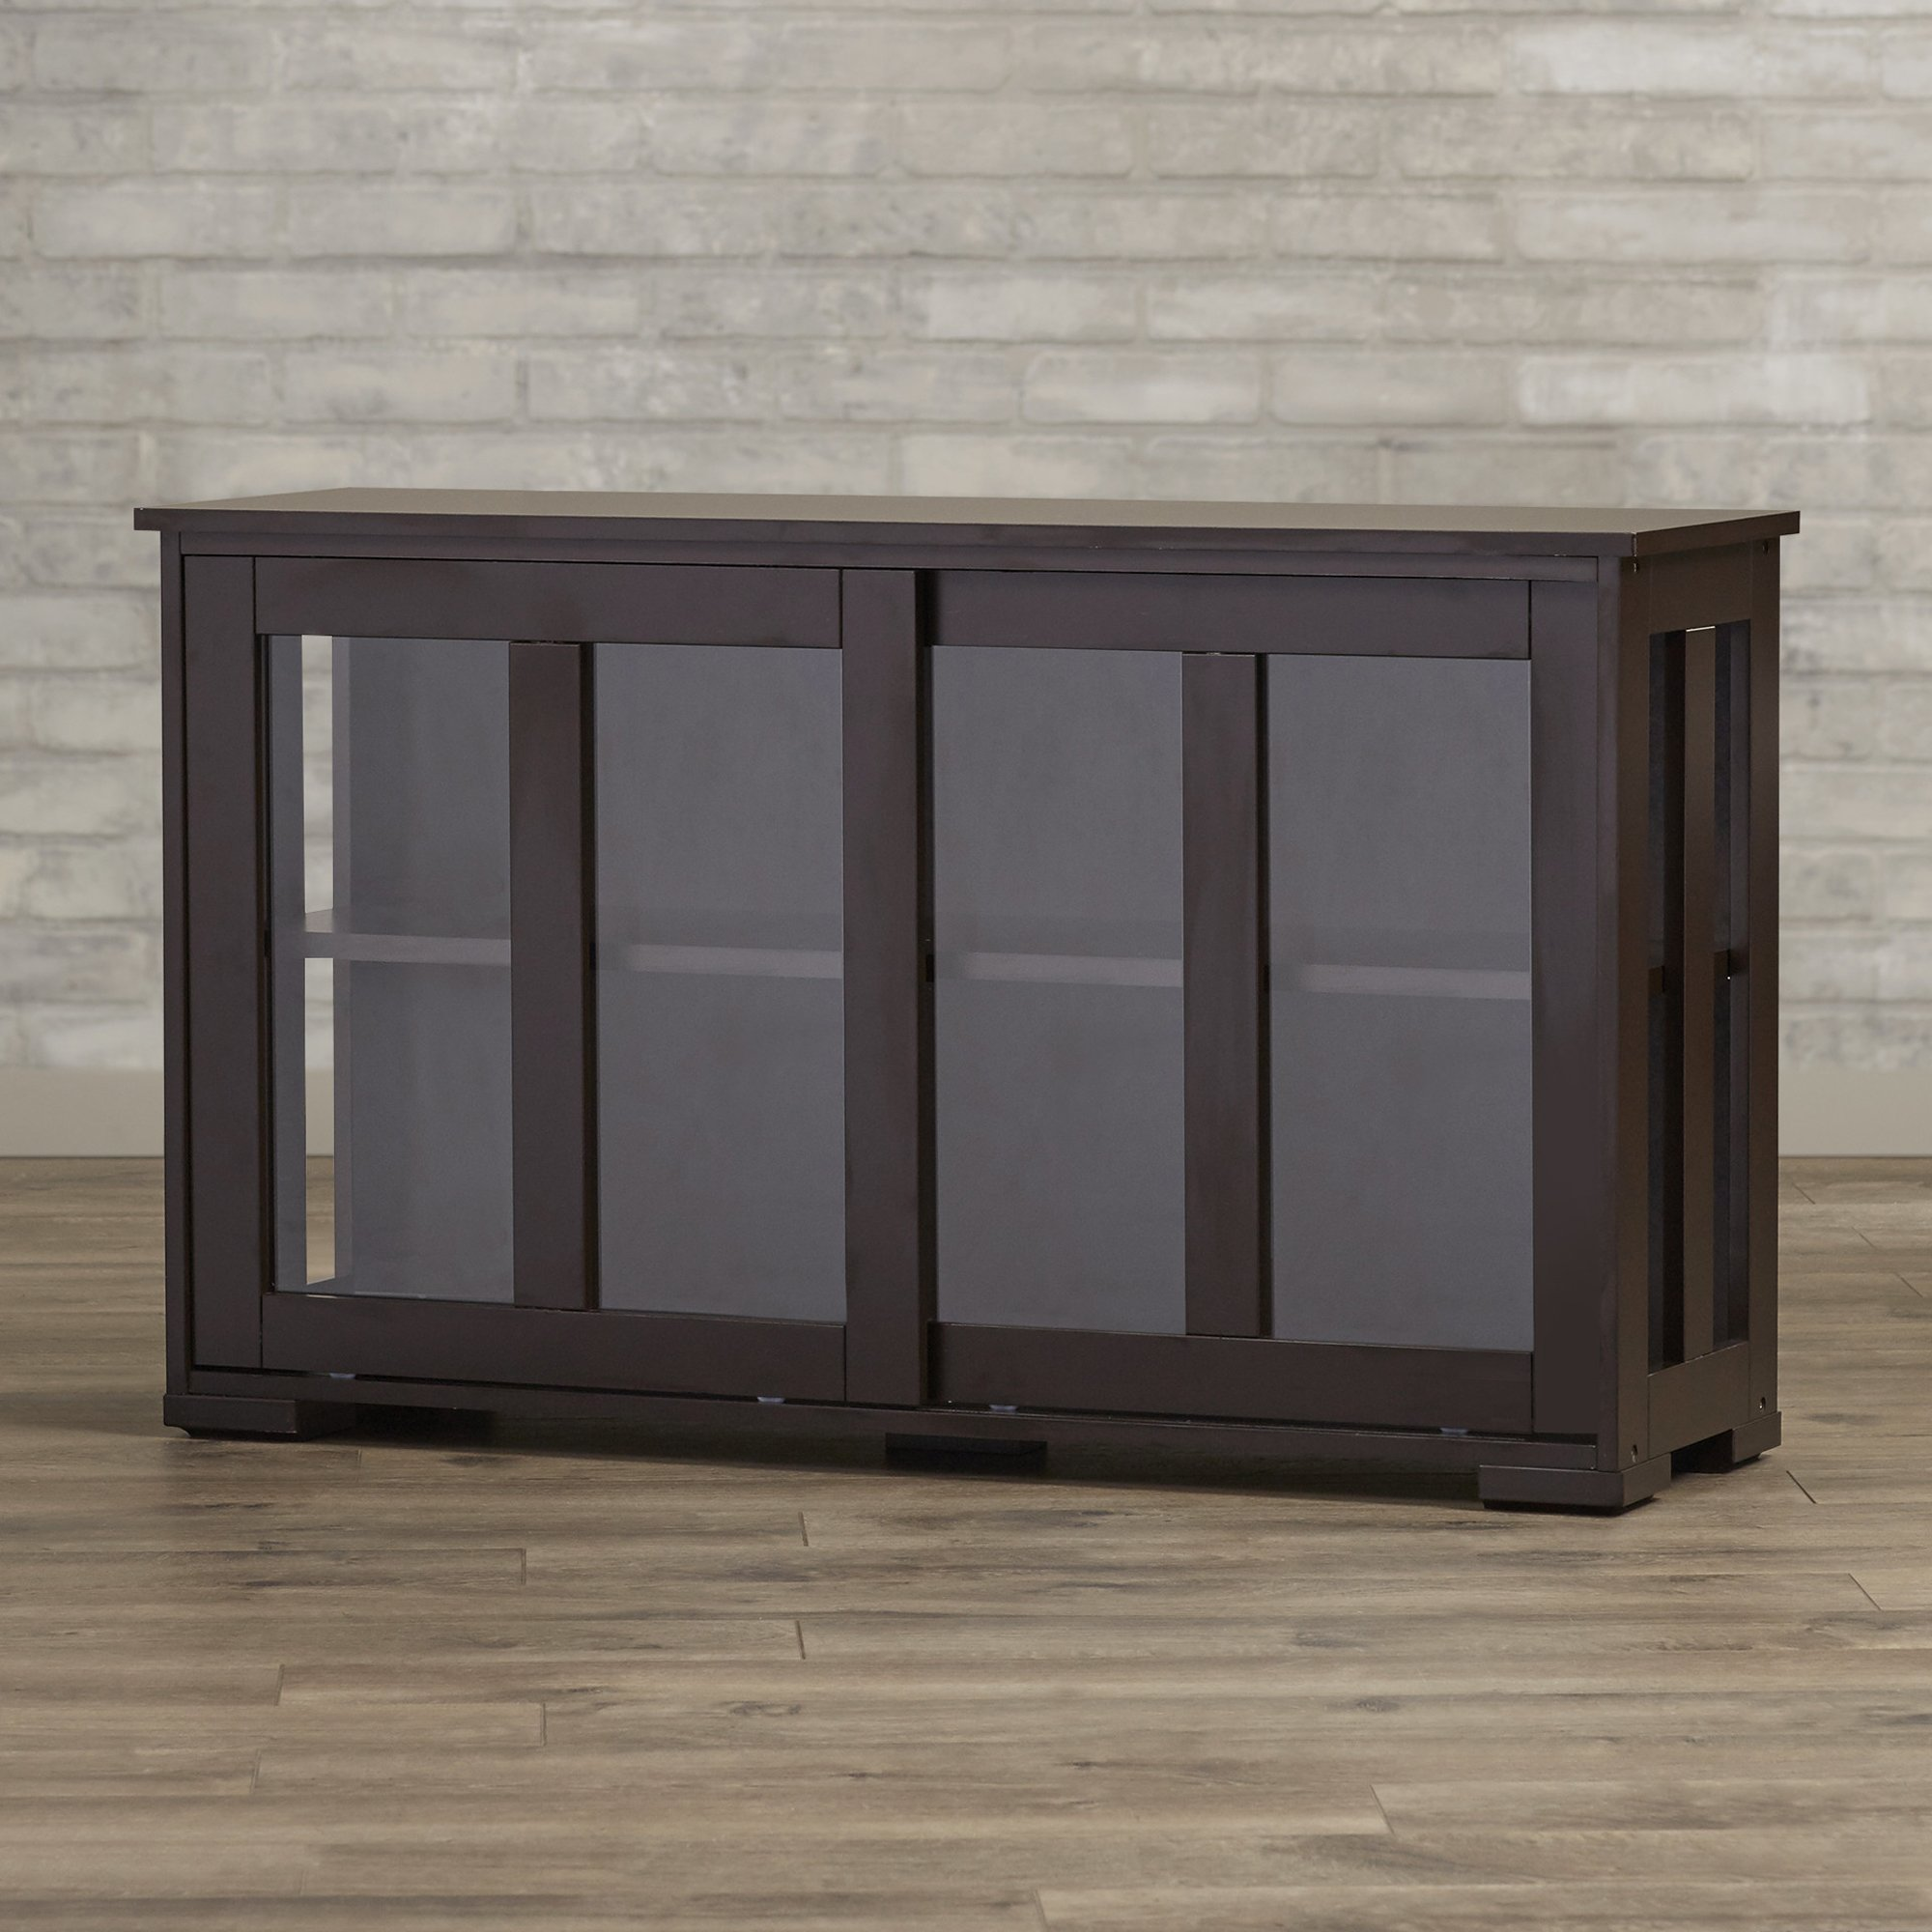 Get Quotations Buffet Cabinet With Sliding Tempered Gl Doors For Kitchen Or Dining Room Contemporary Espresso Sideboard